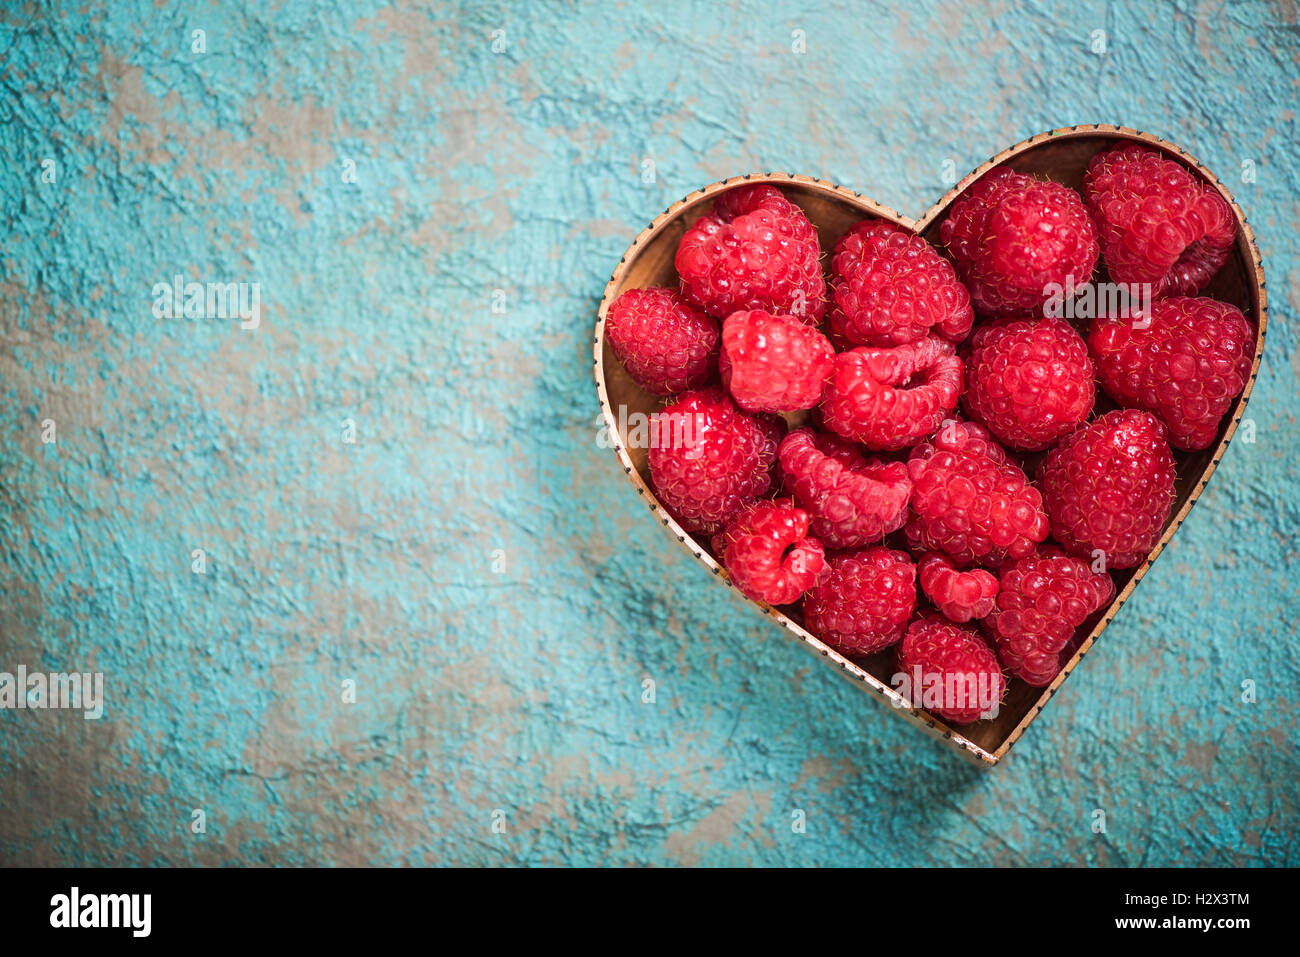 Raspberries in heart shape symbol, love for fruits and healthy living concept - Stock Image